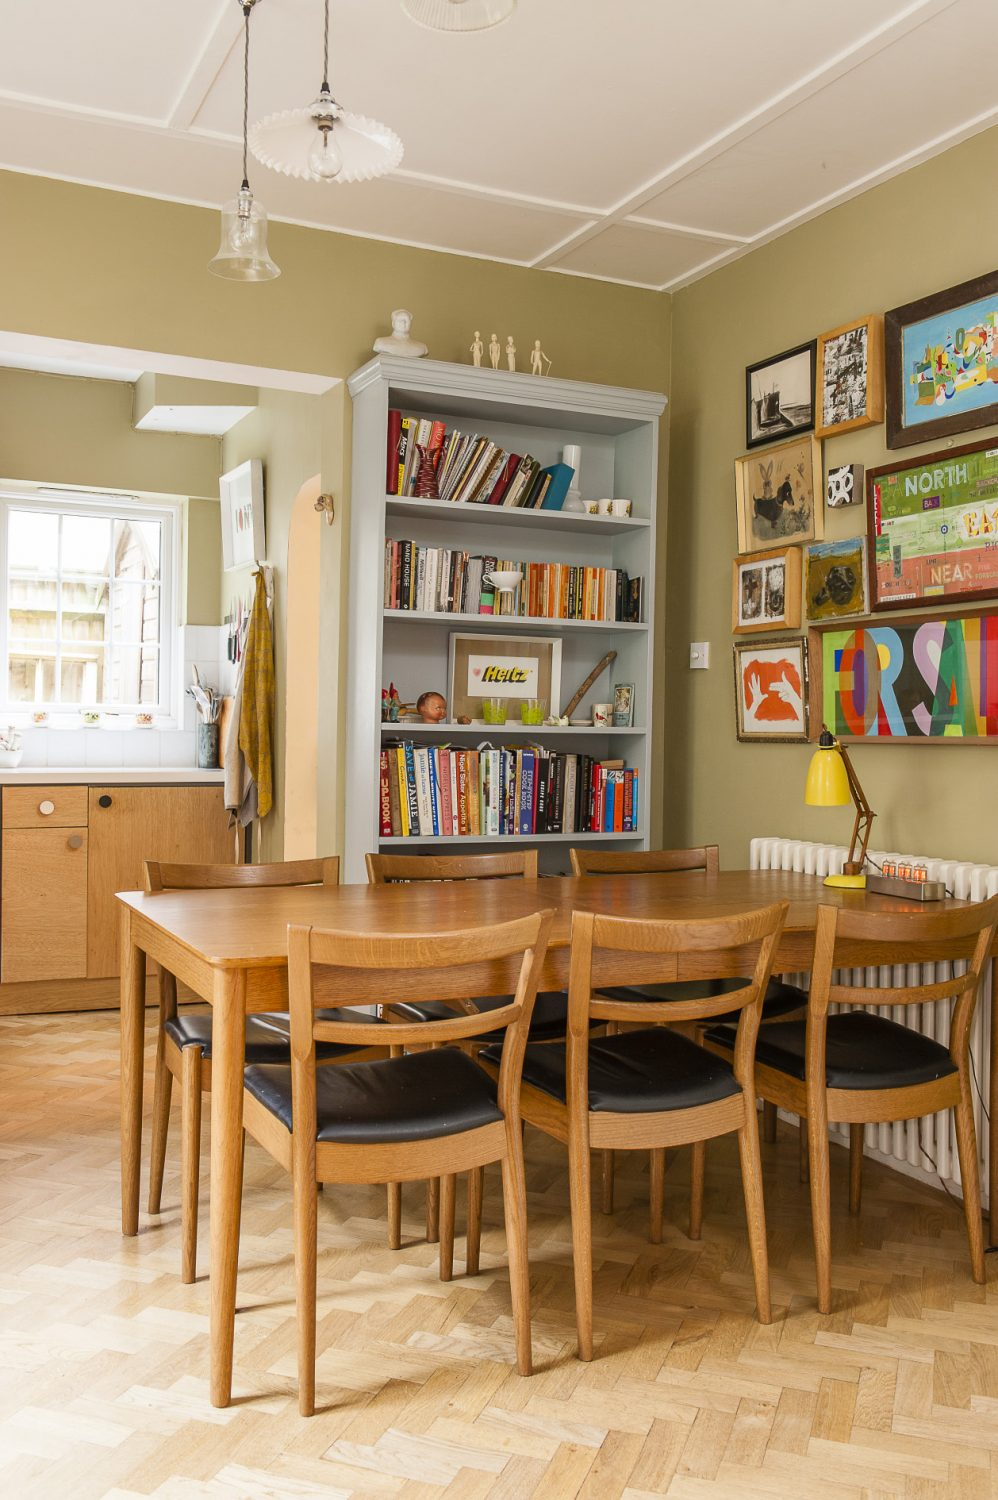 Glass shaded lights from Baileys Home illuminate the elegant retro Ikea table in the dining area. On the wall above the table is a collection of favourite paintings